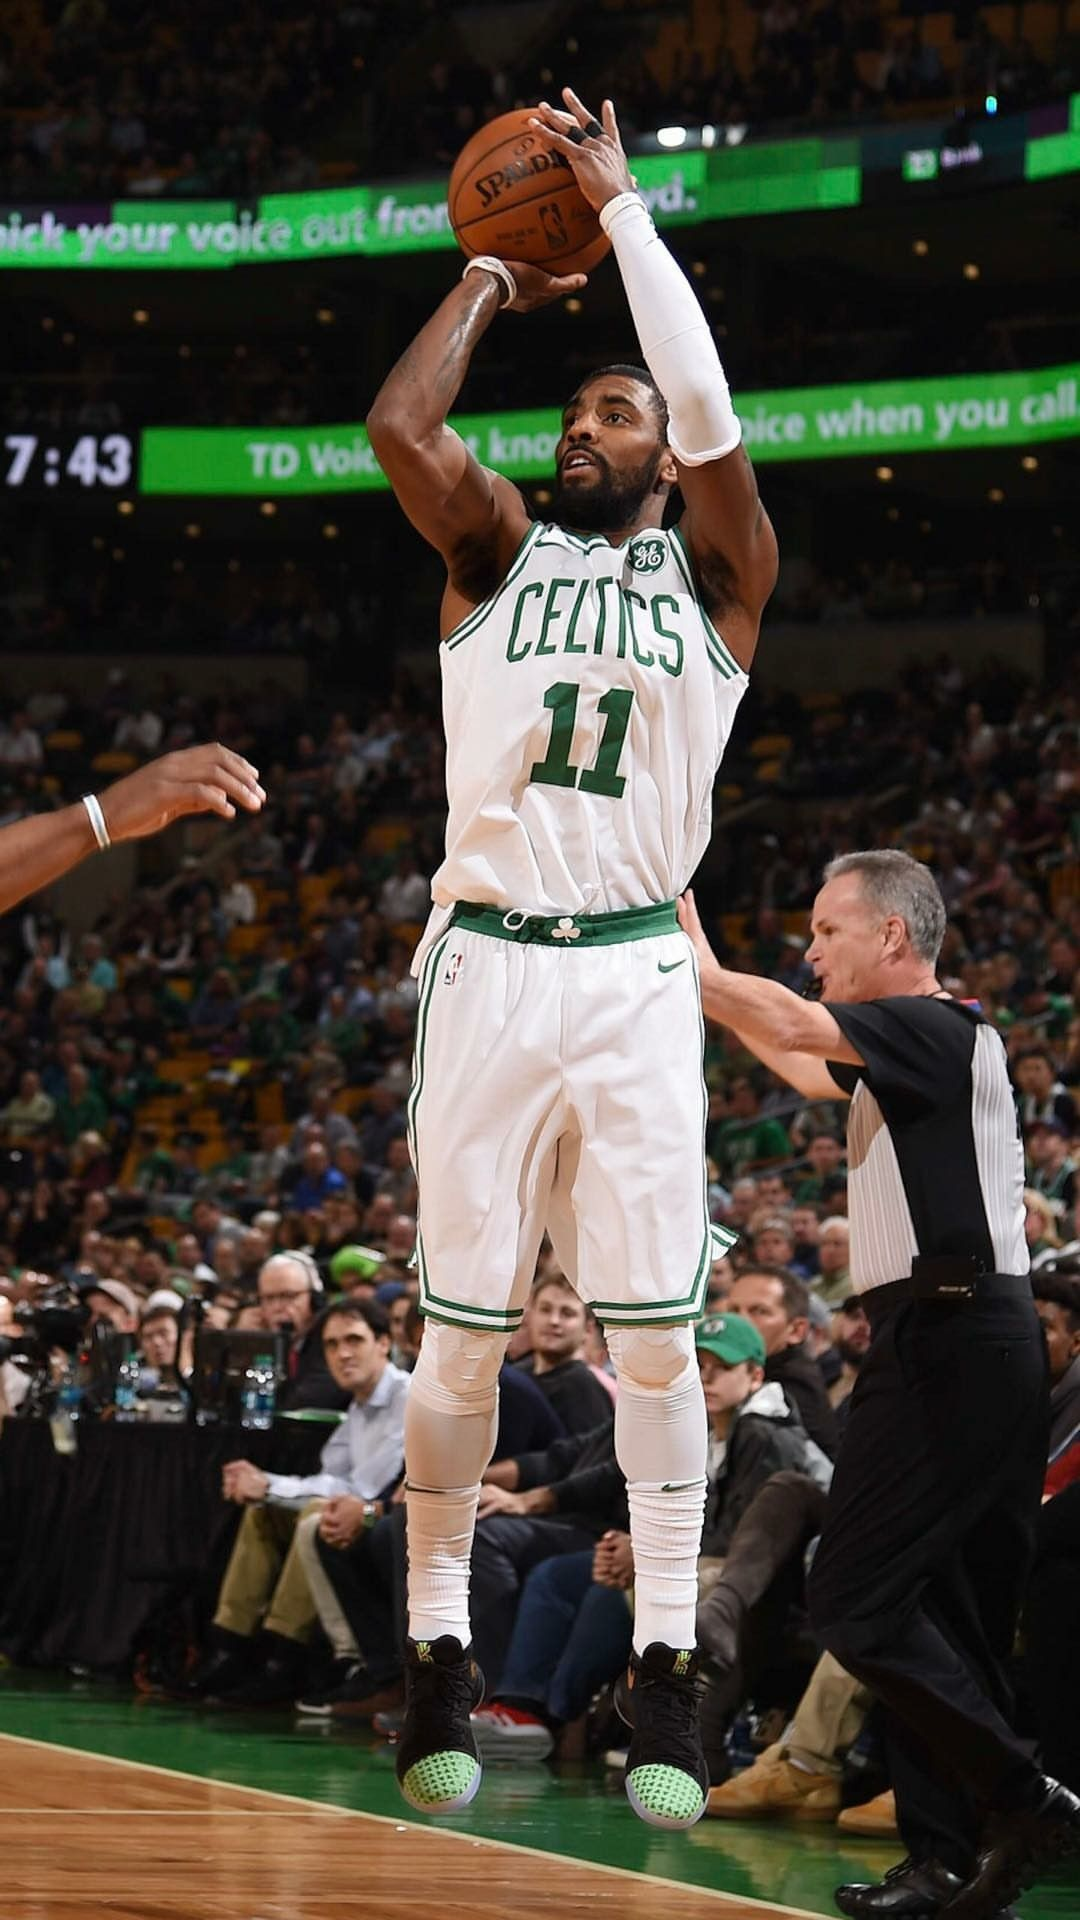 Kyrie Irving Wallpaper Kyrie Irving Celtics Kyrie Irving Irving Nba